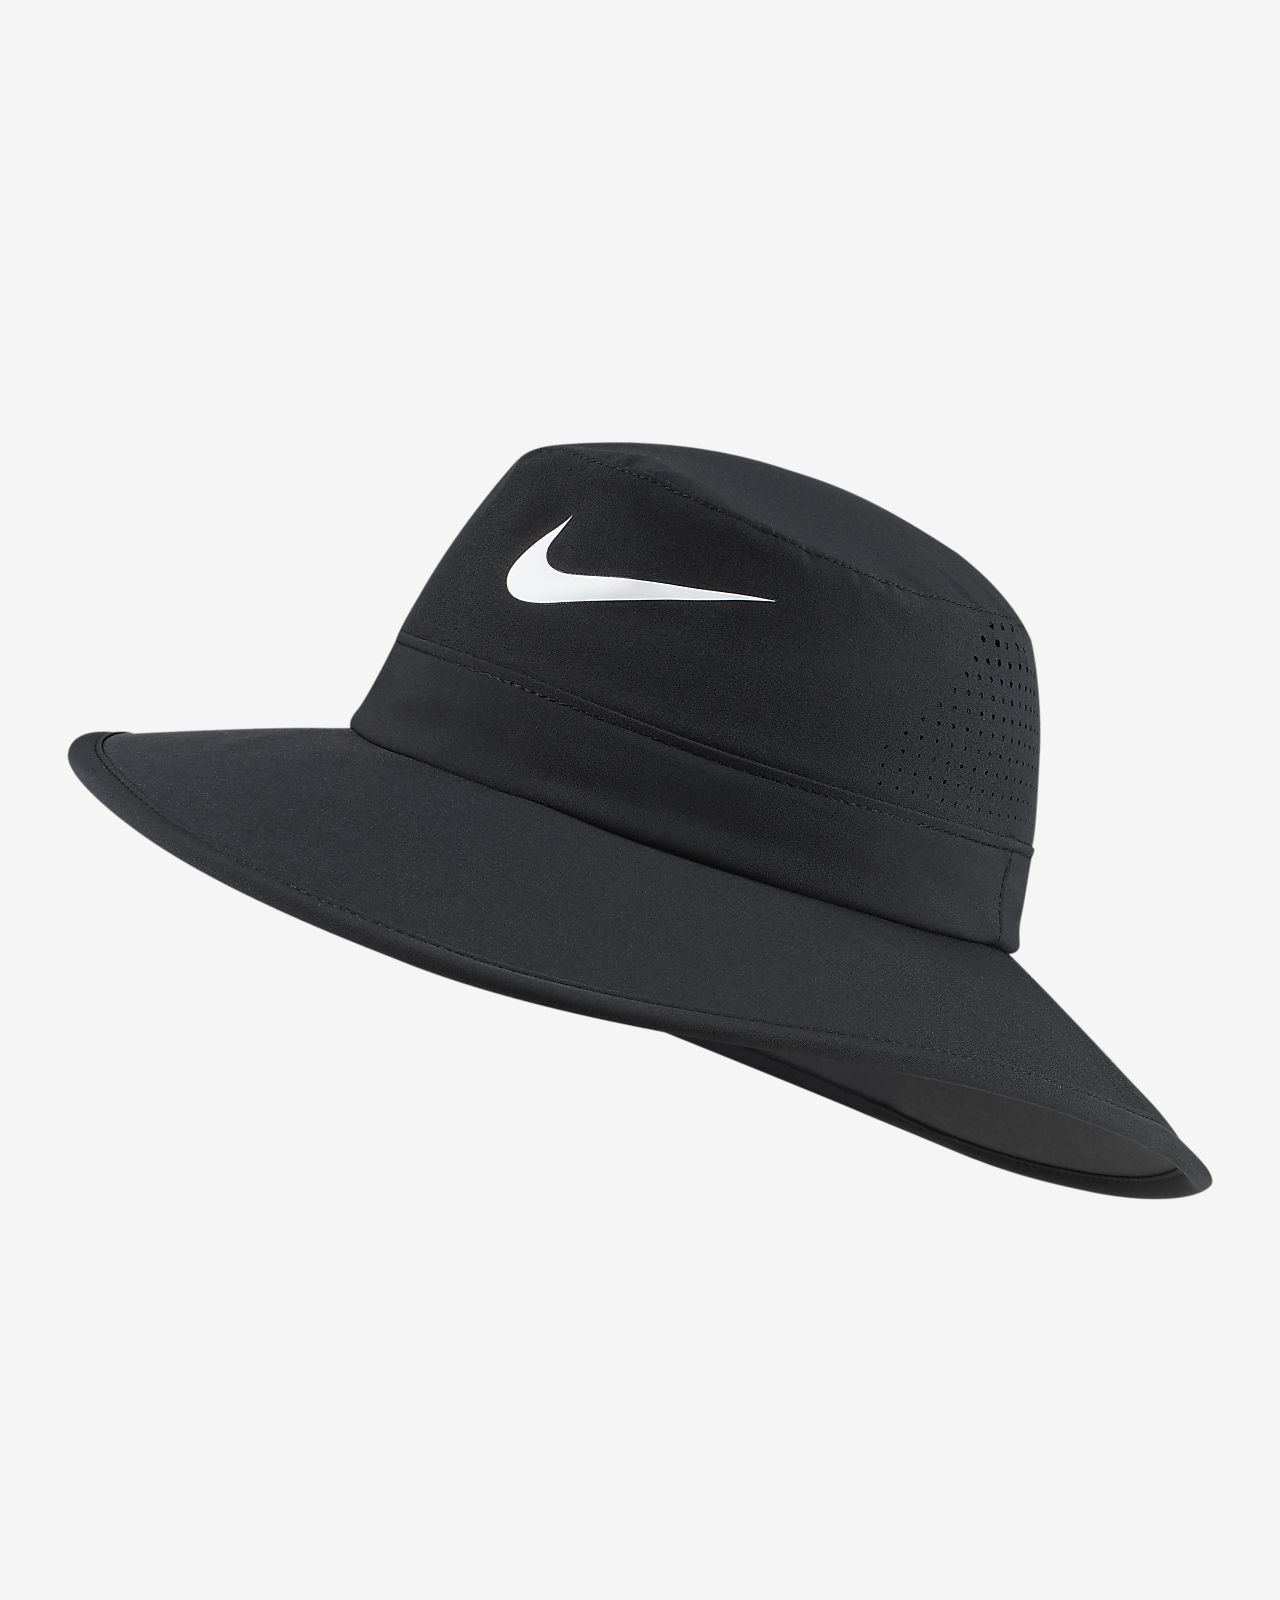 252be9ee4 Nike Sun Protect Golf Hat. Nike.com